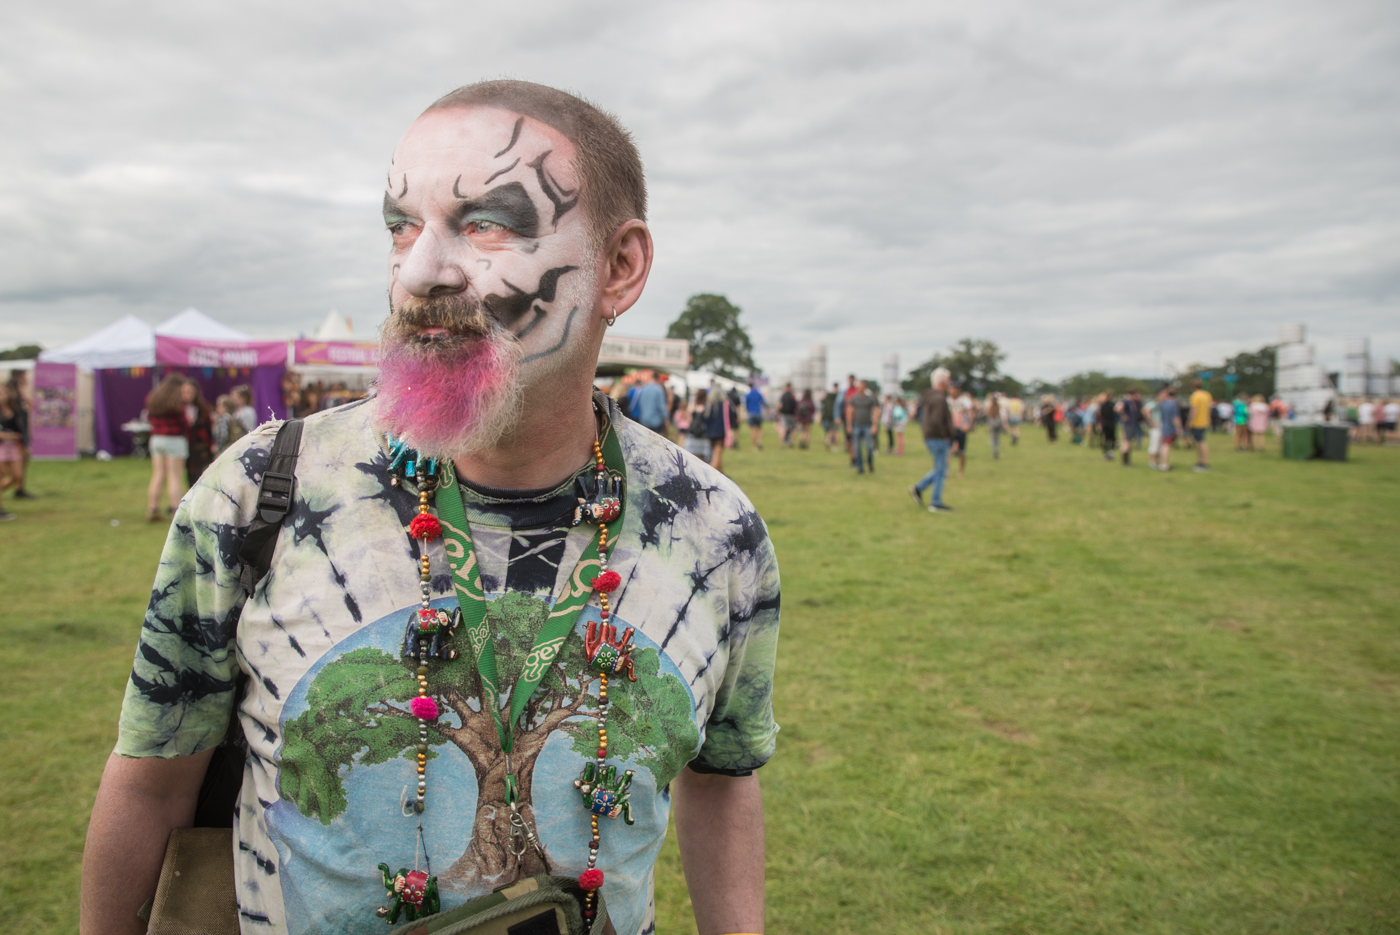 Electric Picnic 2017 photos